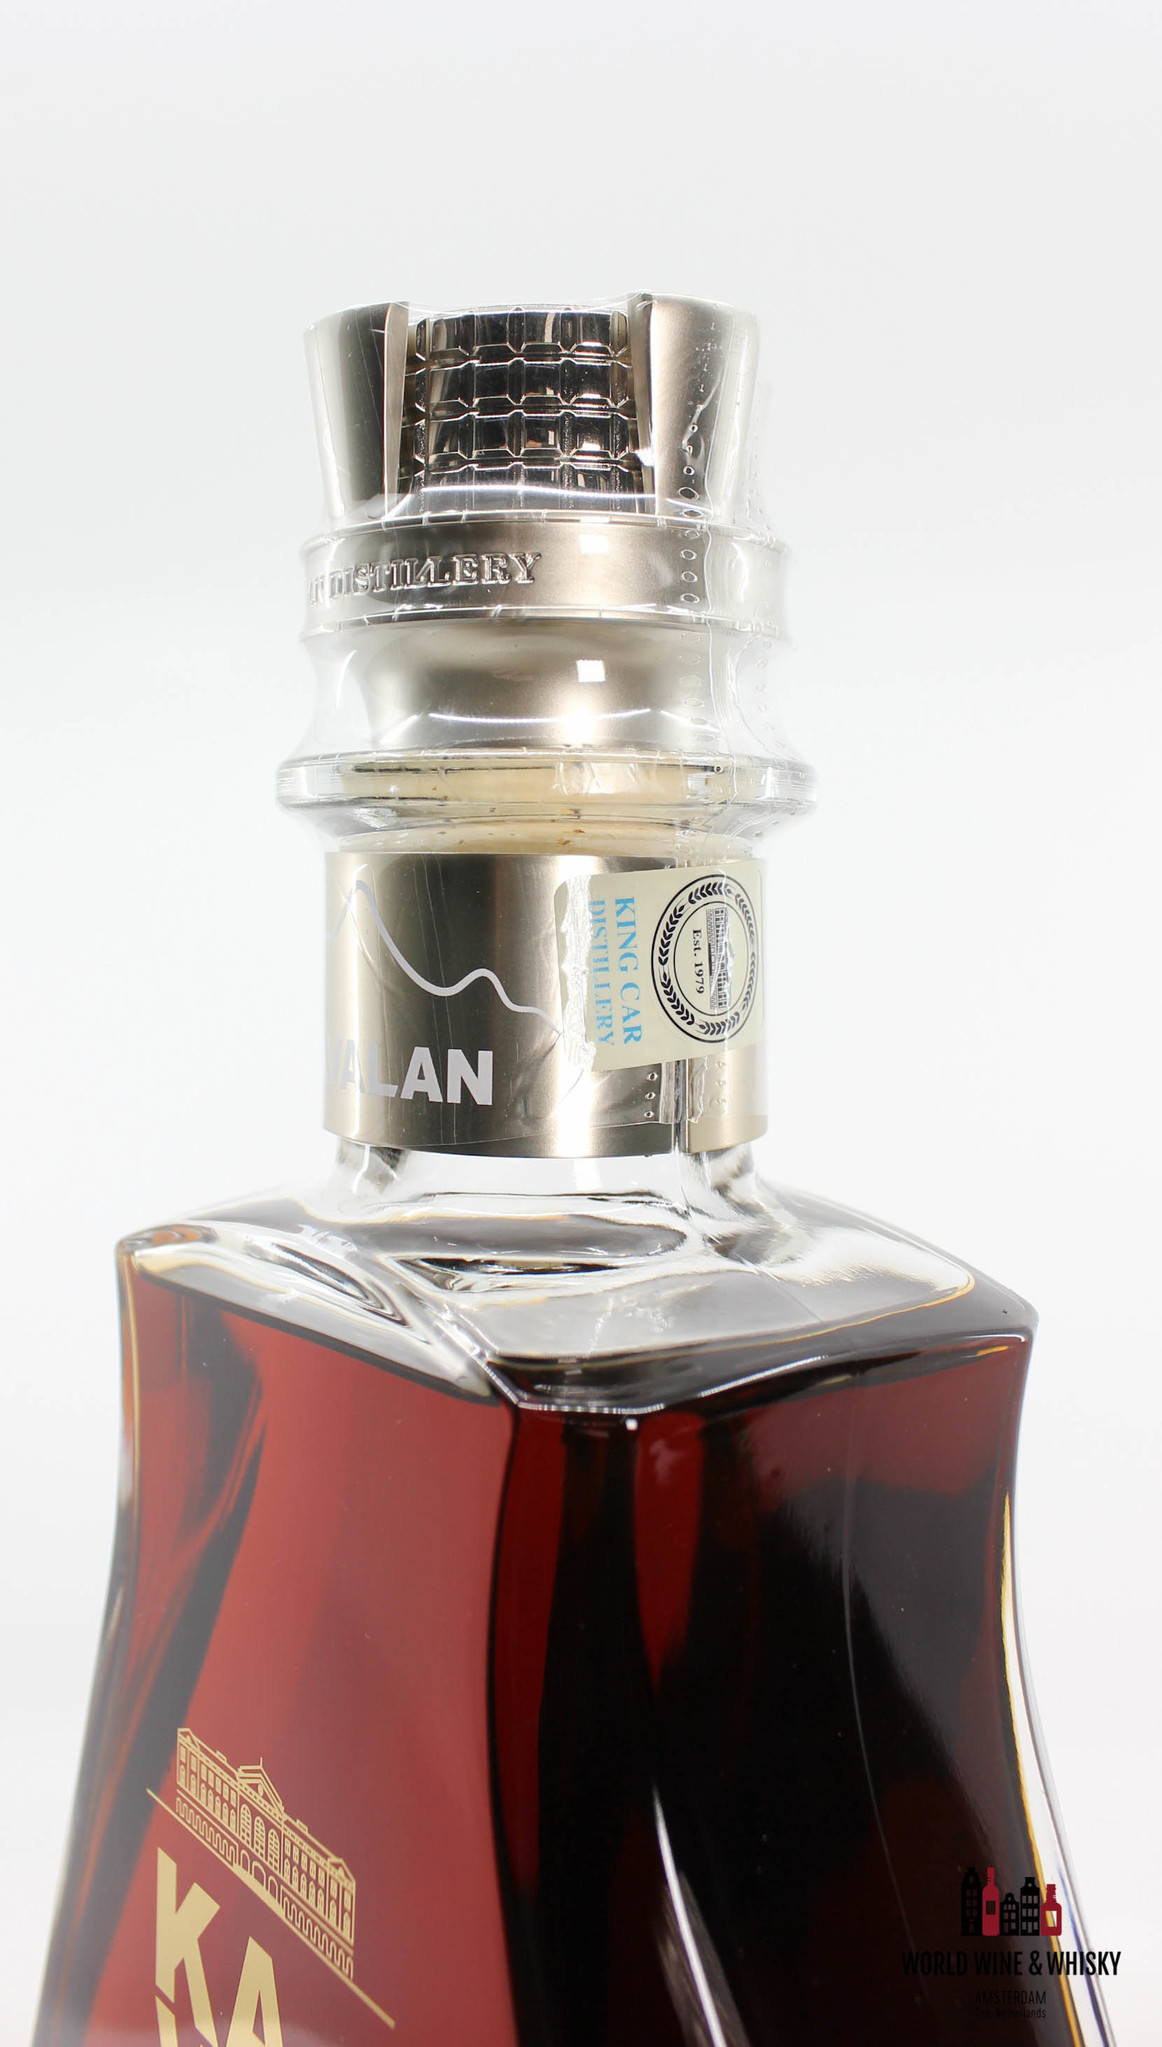 Kavalan Kavalan 2020 - 40th Anniversary Limited Edition - Selected Wine Cask Matured - Cask LF121122027A 56.3% (1 of 99)